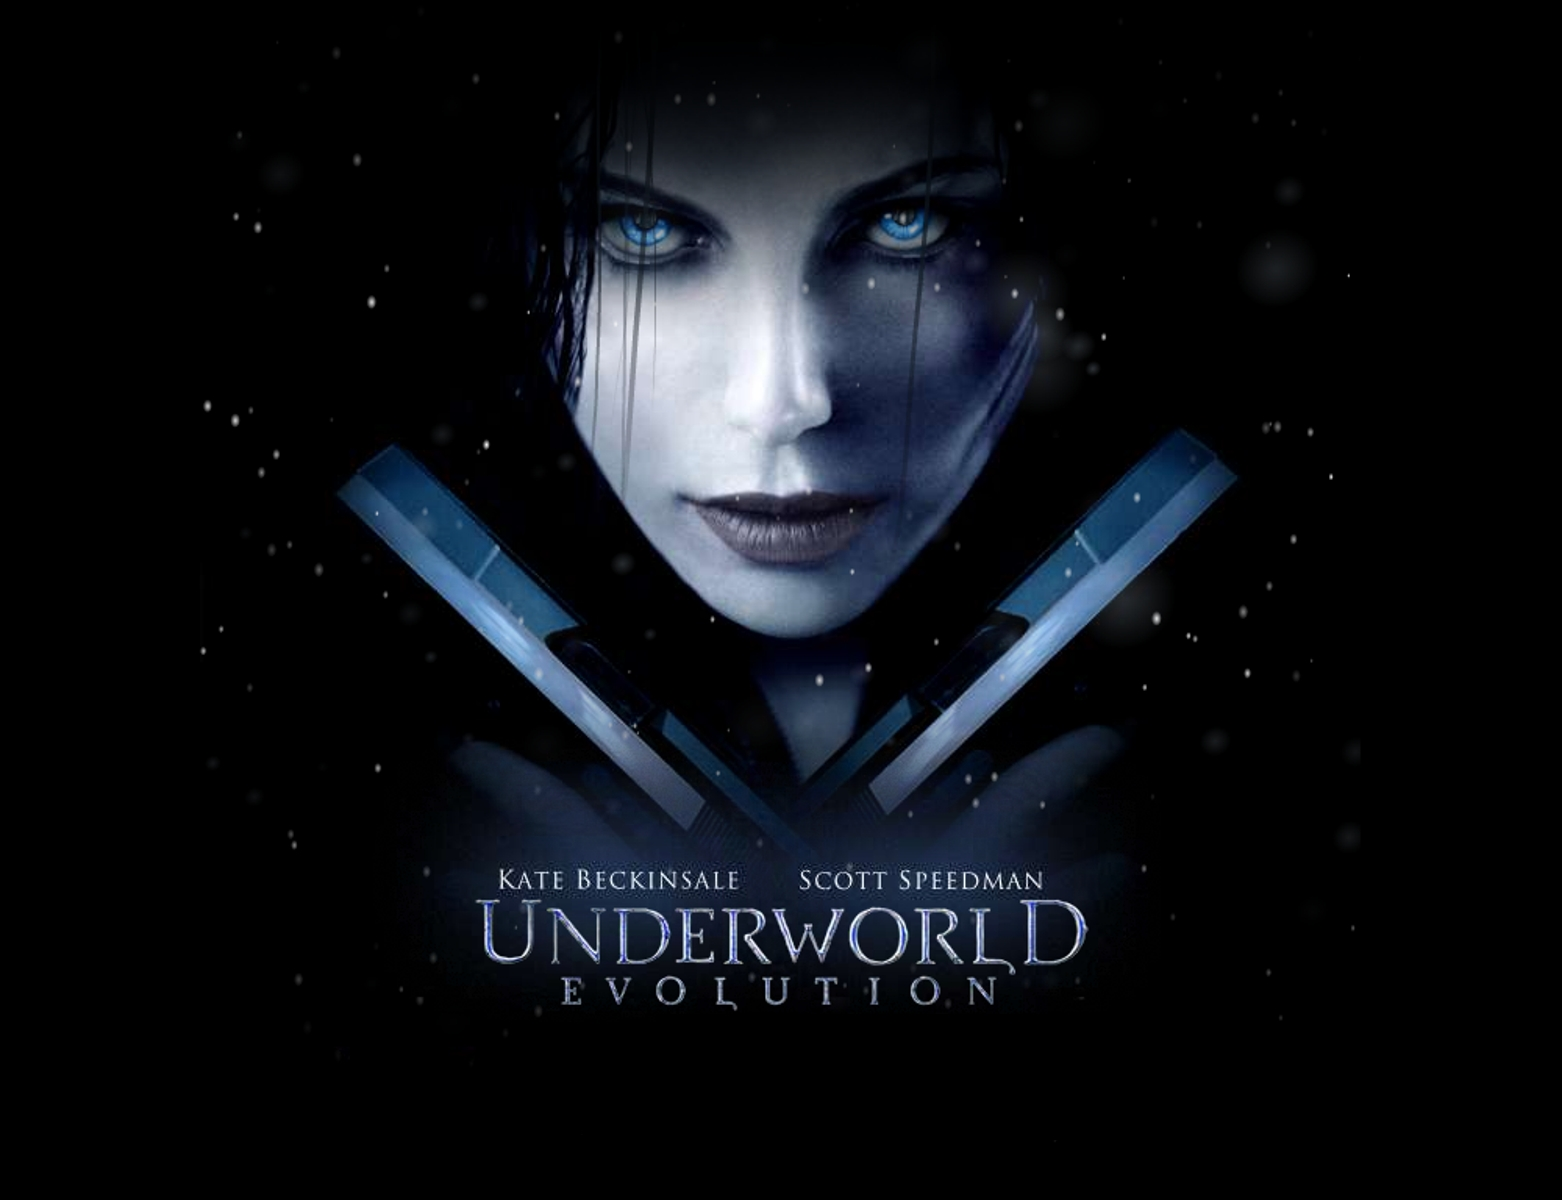 http://1.bp.blogspot.com/-EhC8iDAr8tM/TvBO_tfXMdI/AAAAAAAABZM/xPKov57DfZg/s1600/Kate+Beckinsale+-+Underworld+Evolution+-+wallpaper+2.jpg